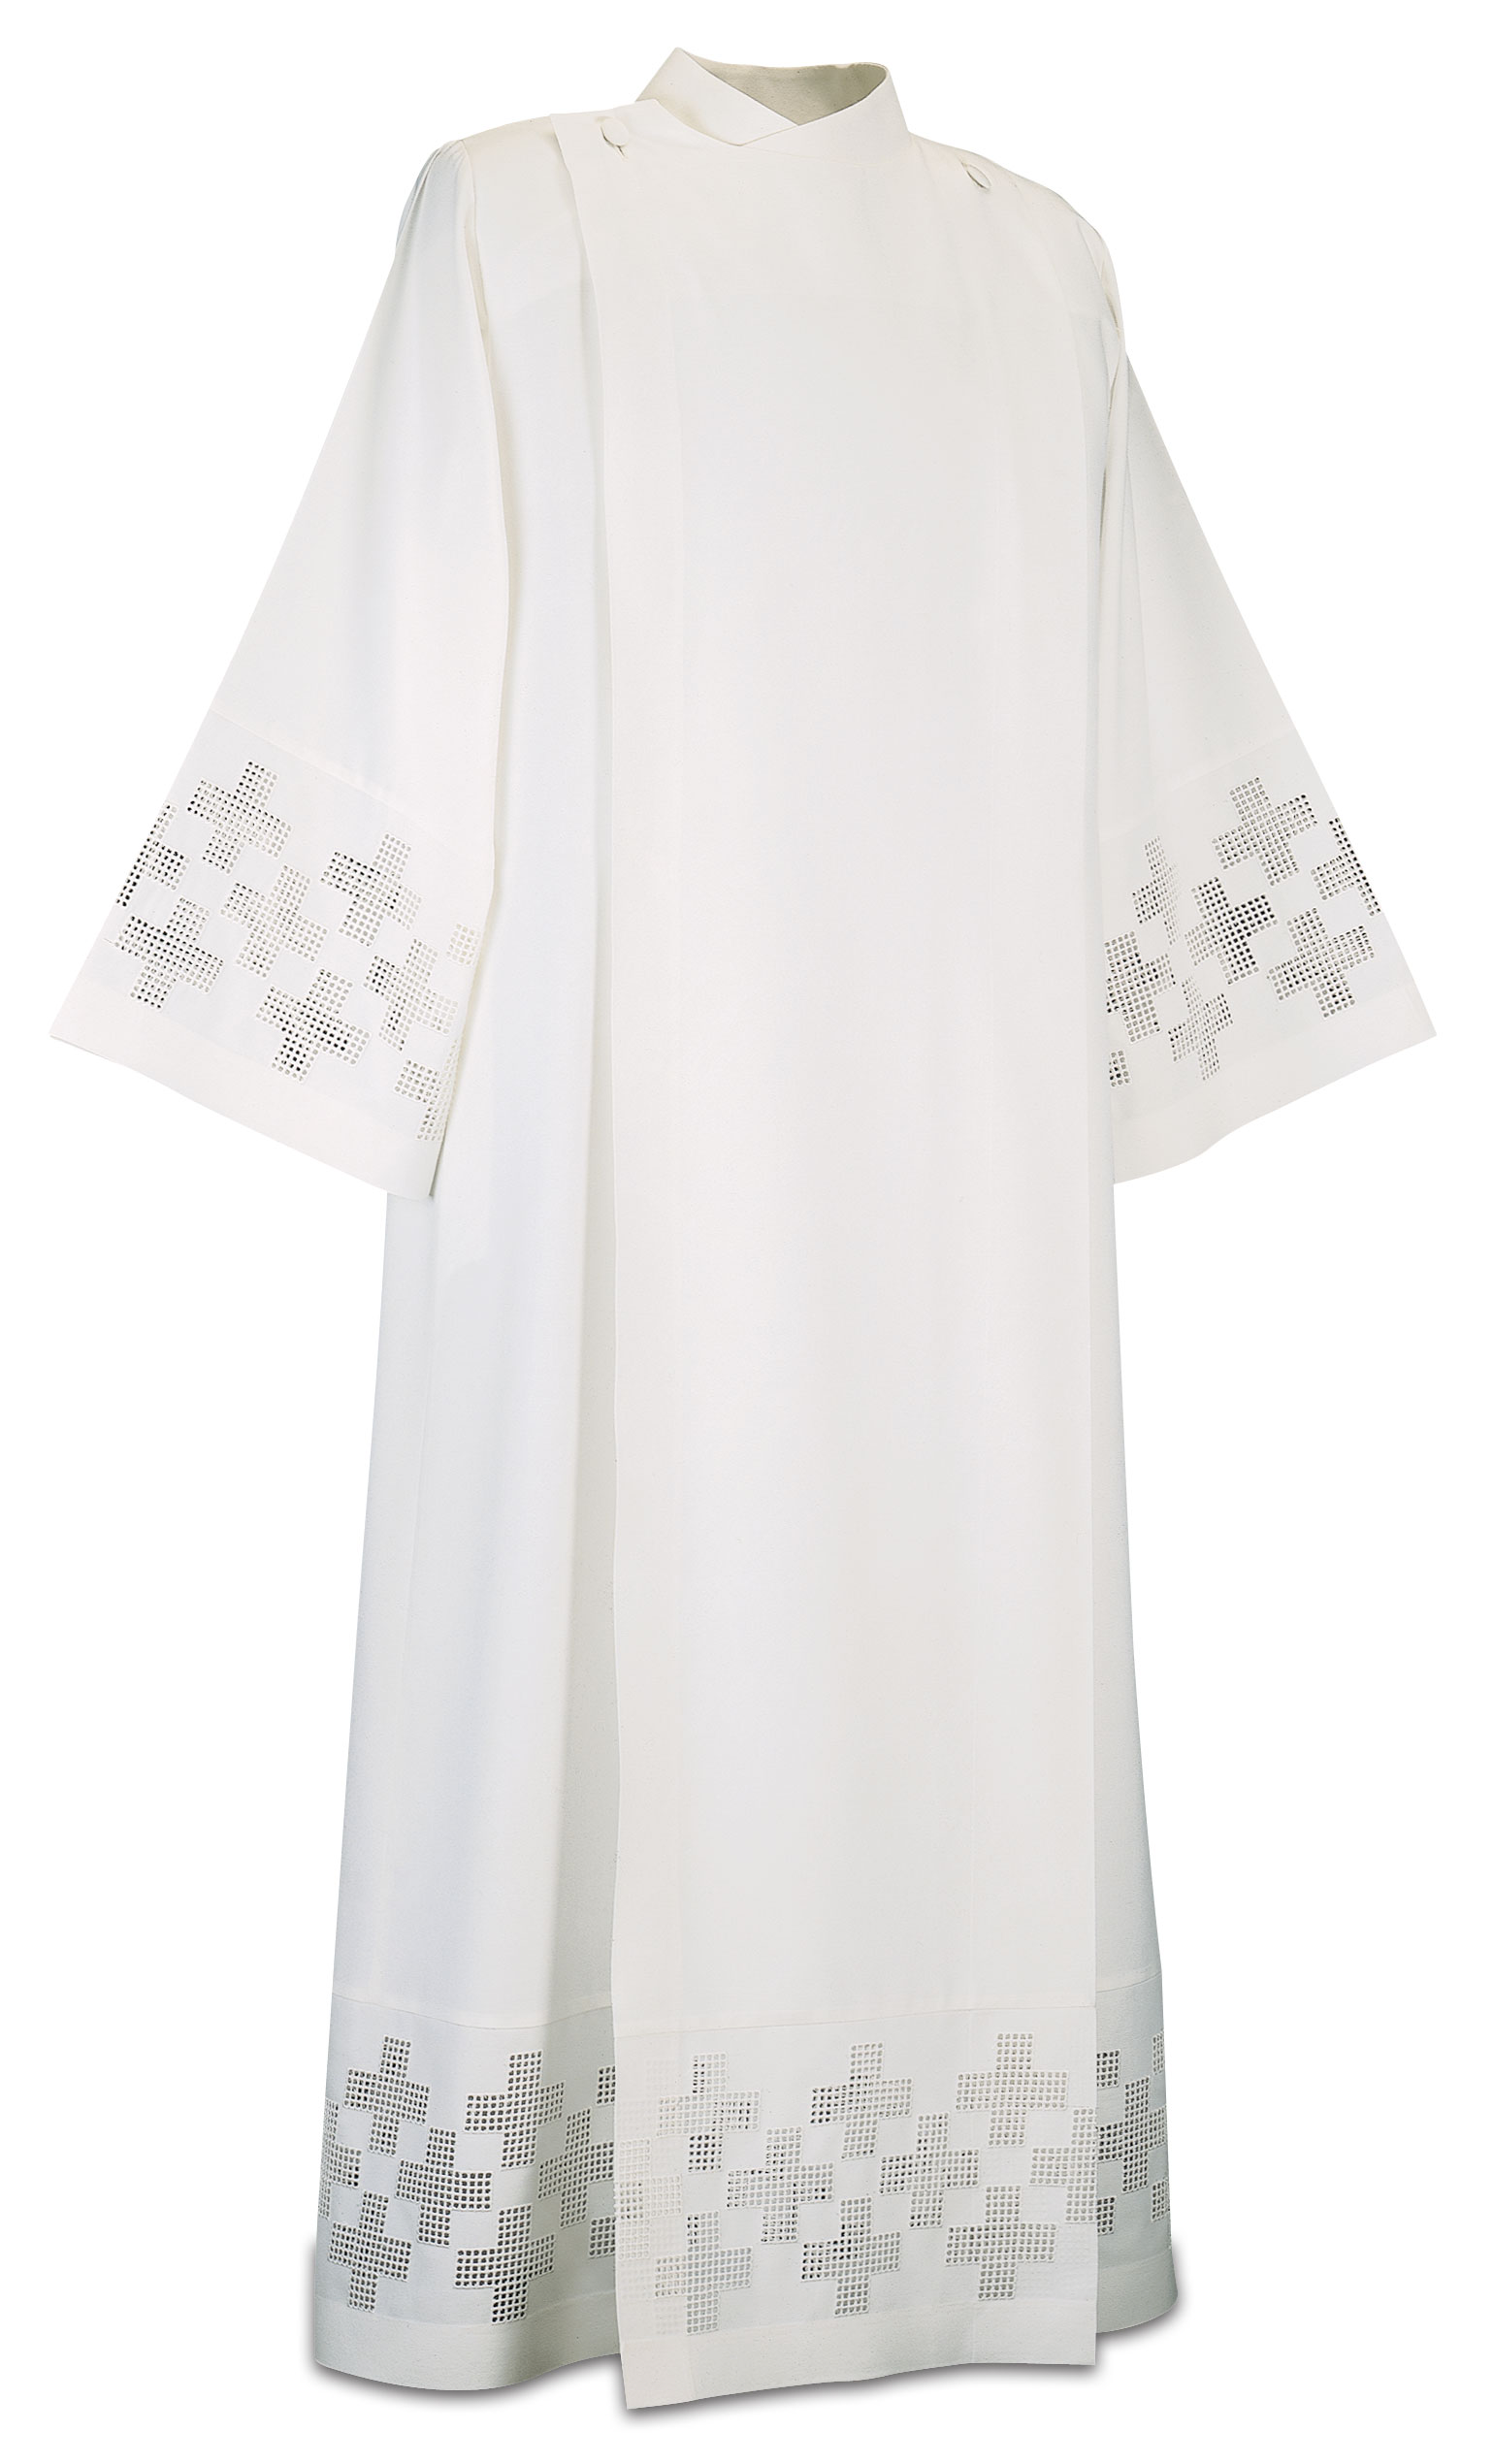 Women's Alb, embroidered crosses